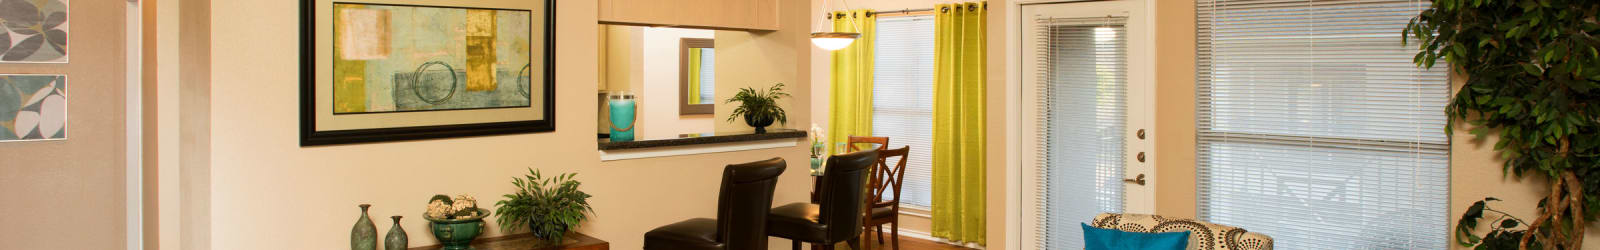 Amenities at El Lago Apartments in McKinney, Texas